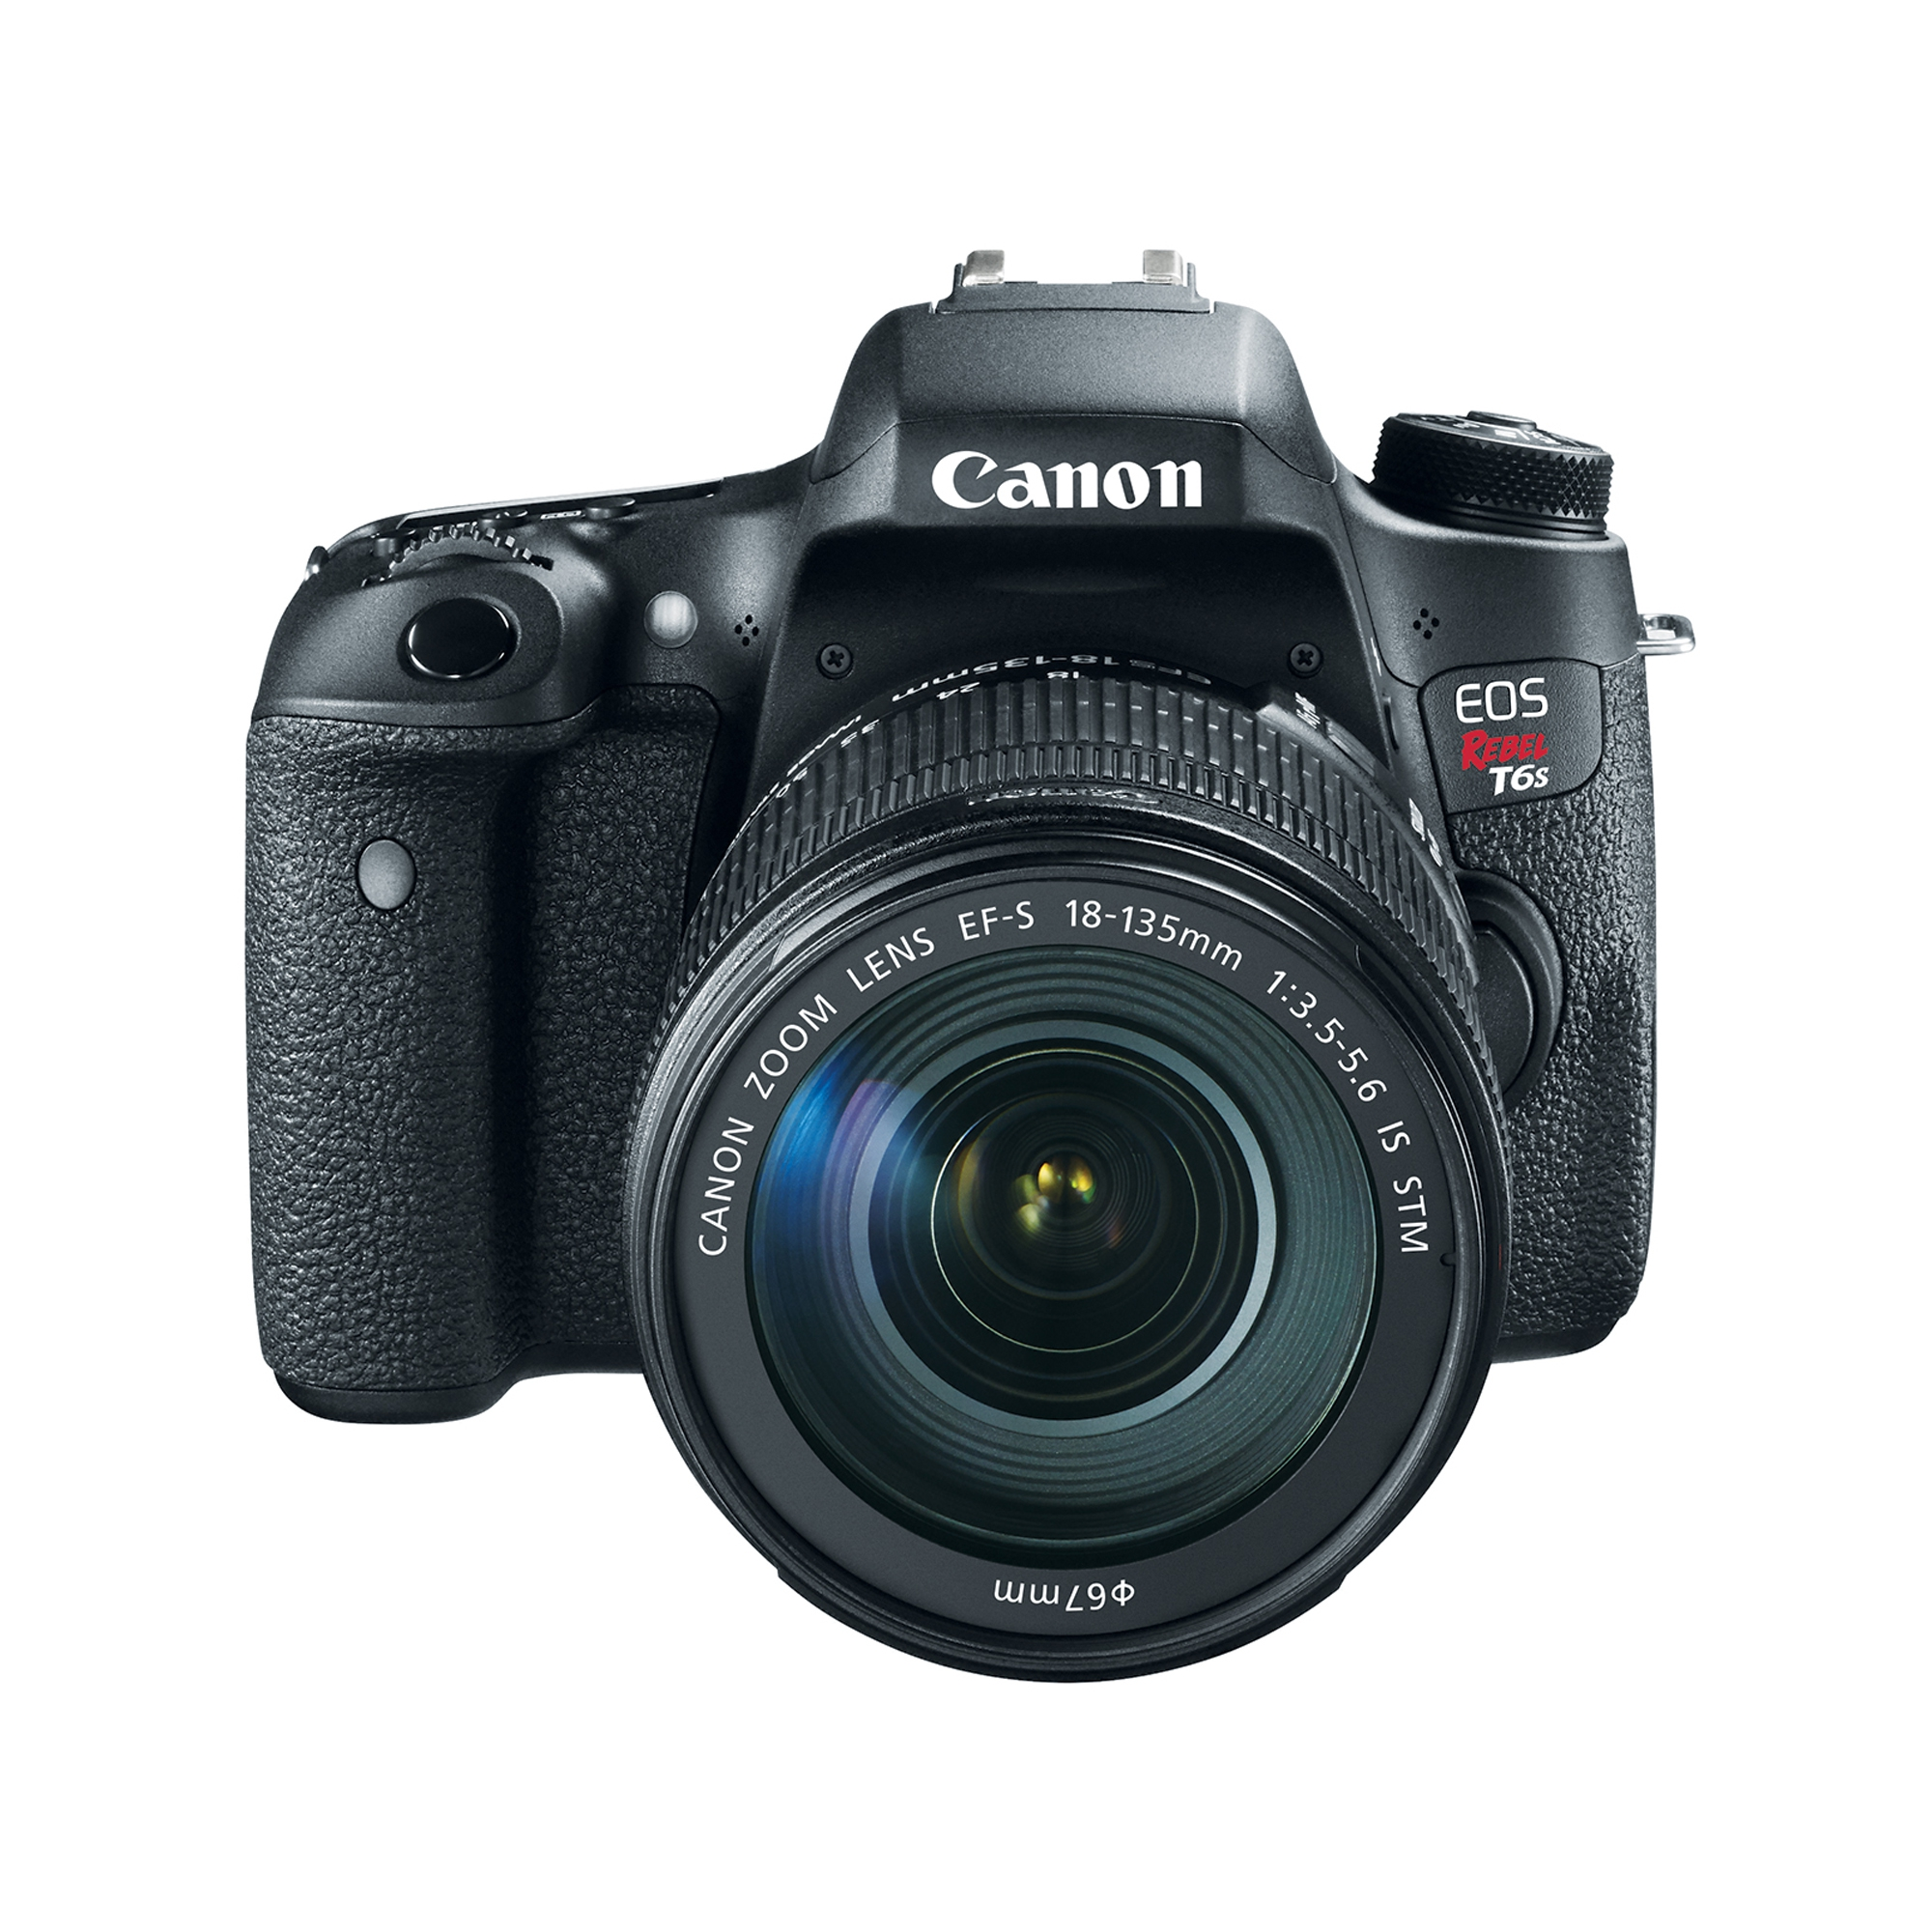 CANON EOS T6S W/ EF 18-135MM IS STM LENS